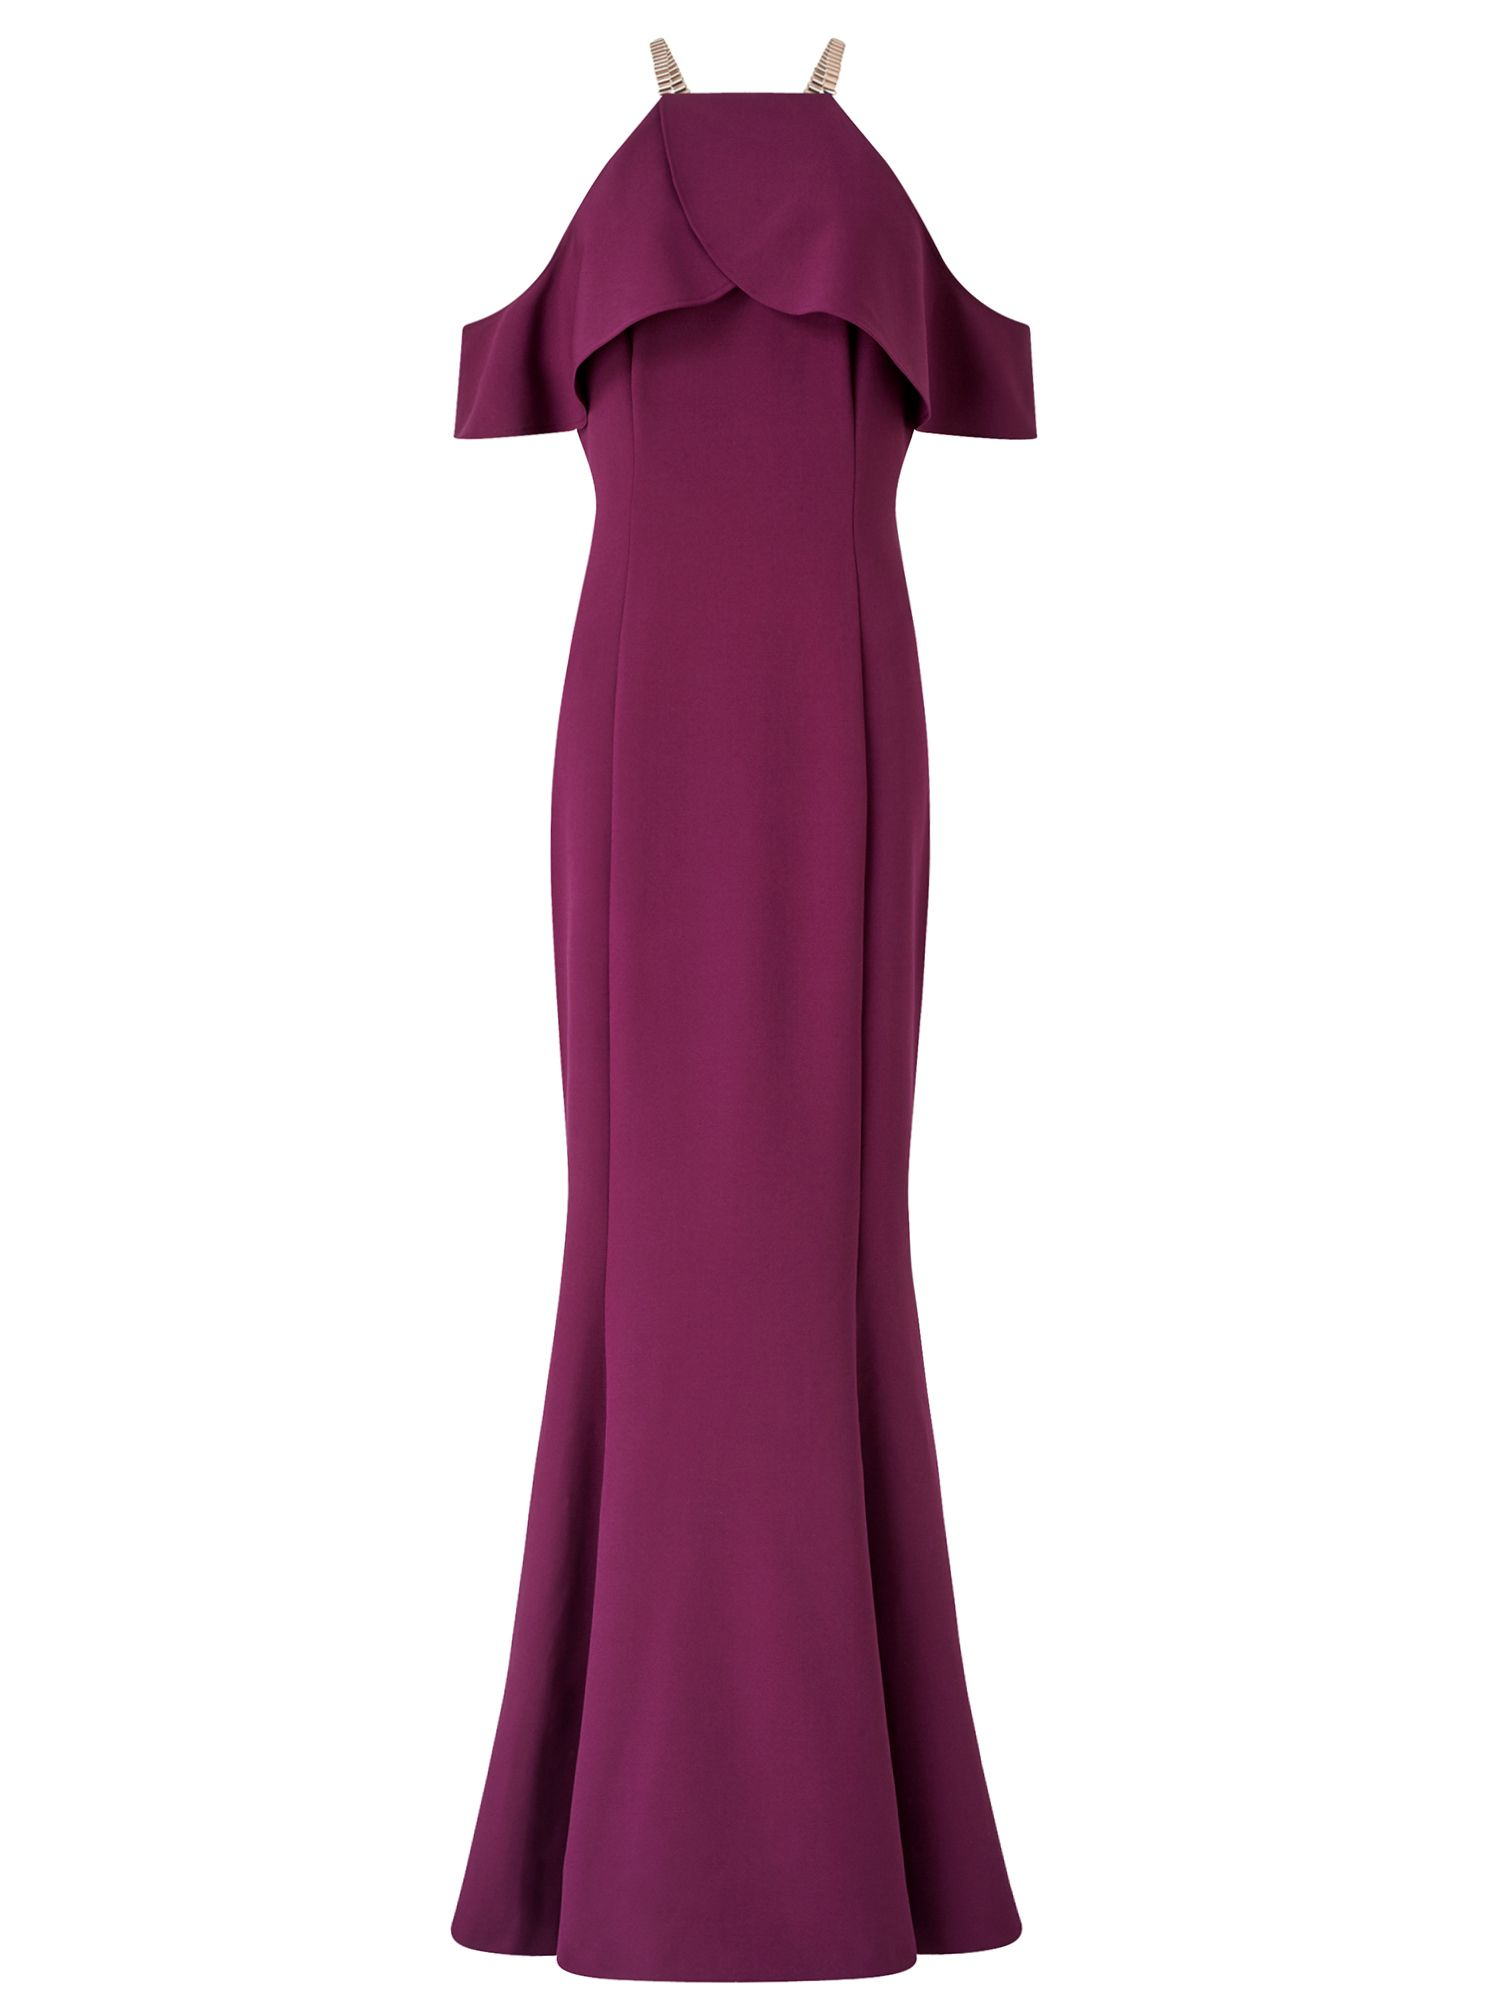 Ariella Rita Drop Shoulder Peplum Dress, Purple